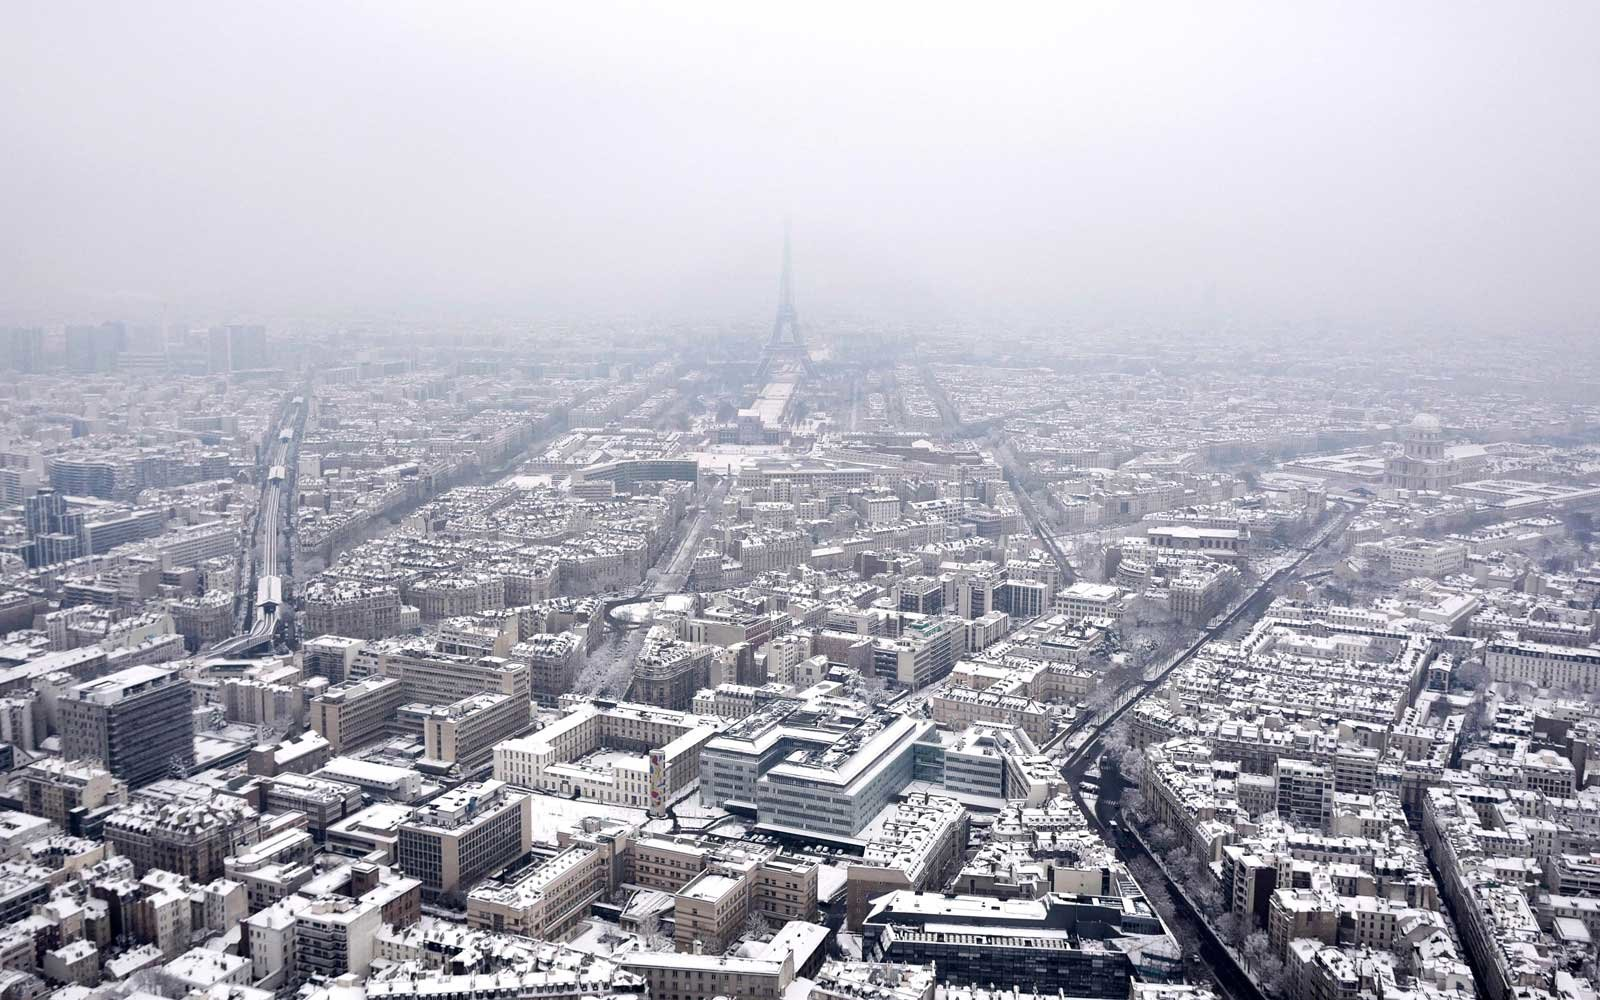 An aerial view of Paris, France covered in snow on February 7, 2018